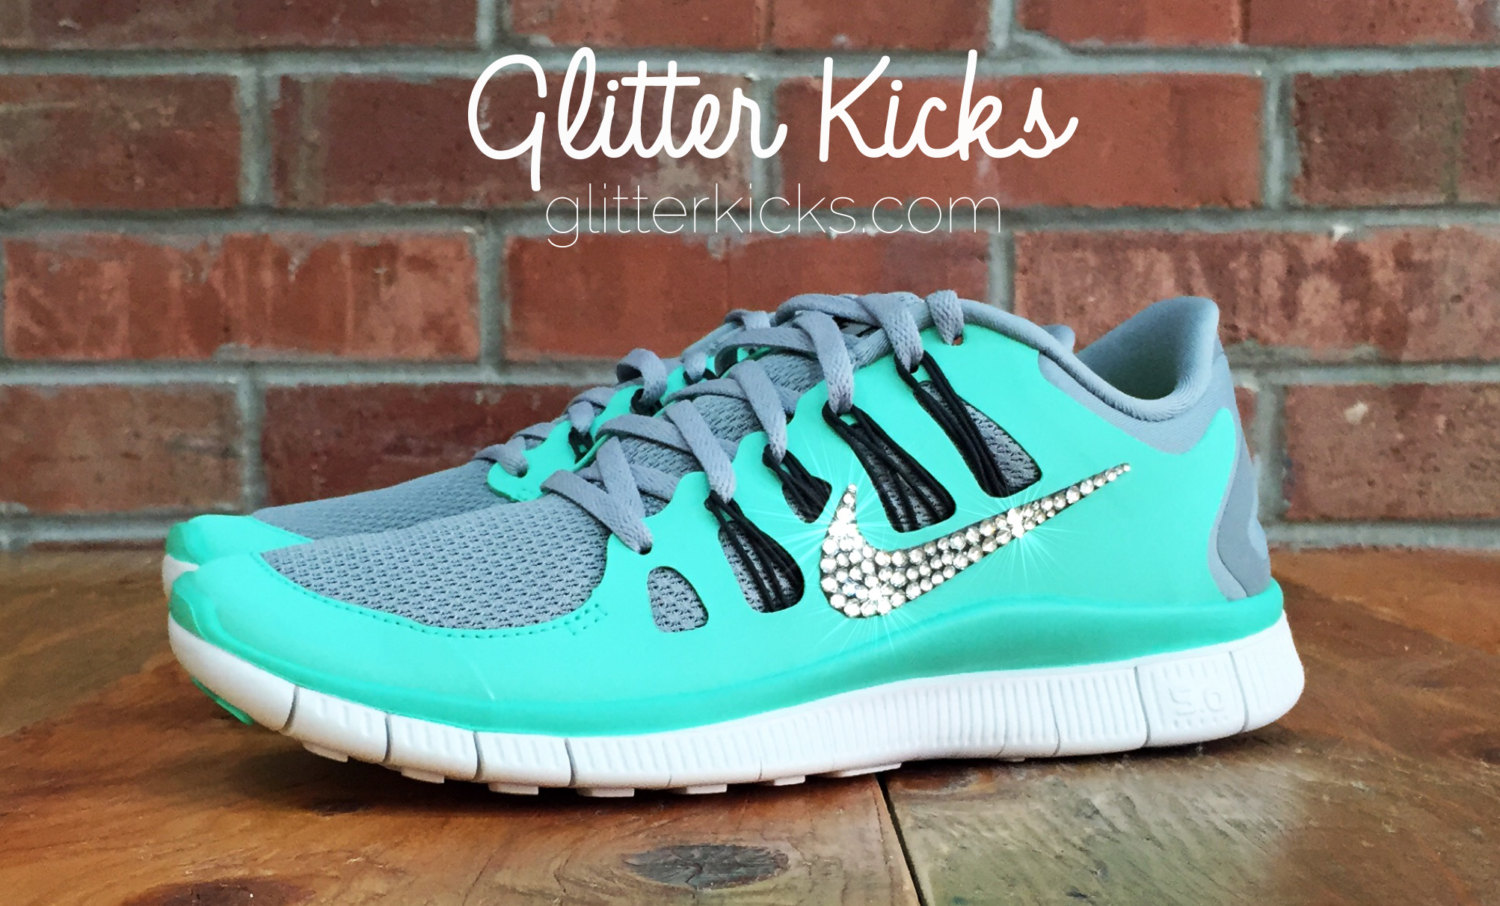 6a8cceaf7670d Bling Nike Free 5.0 Glitter Kicks With Swarovski Crystal Rhinestones - Bling  Nikes